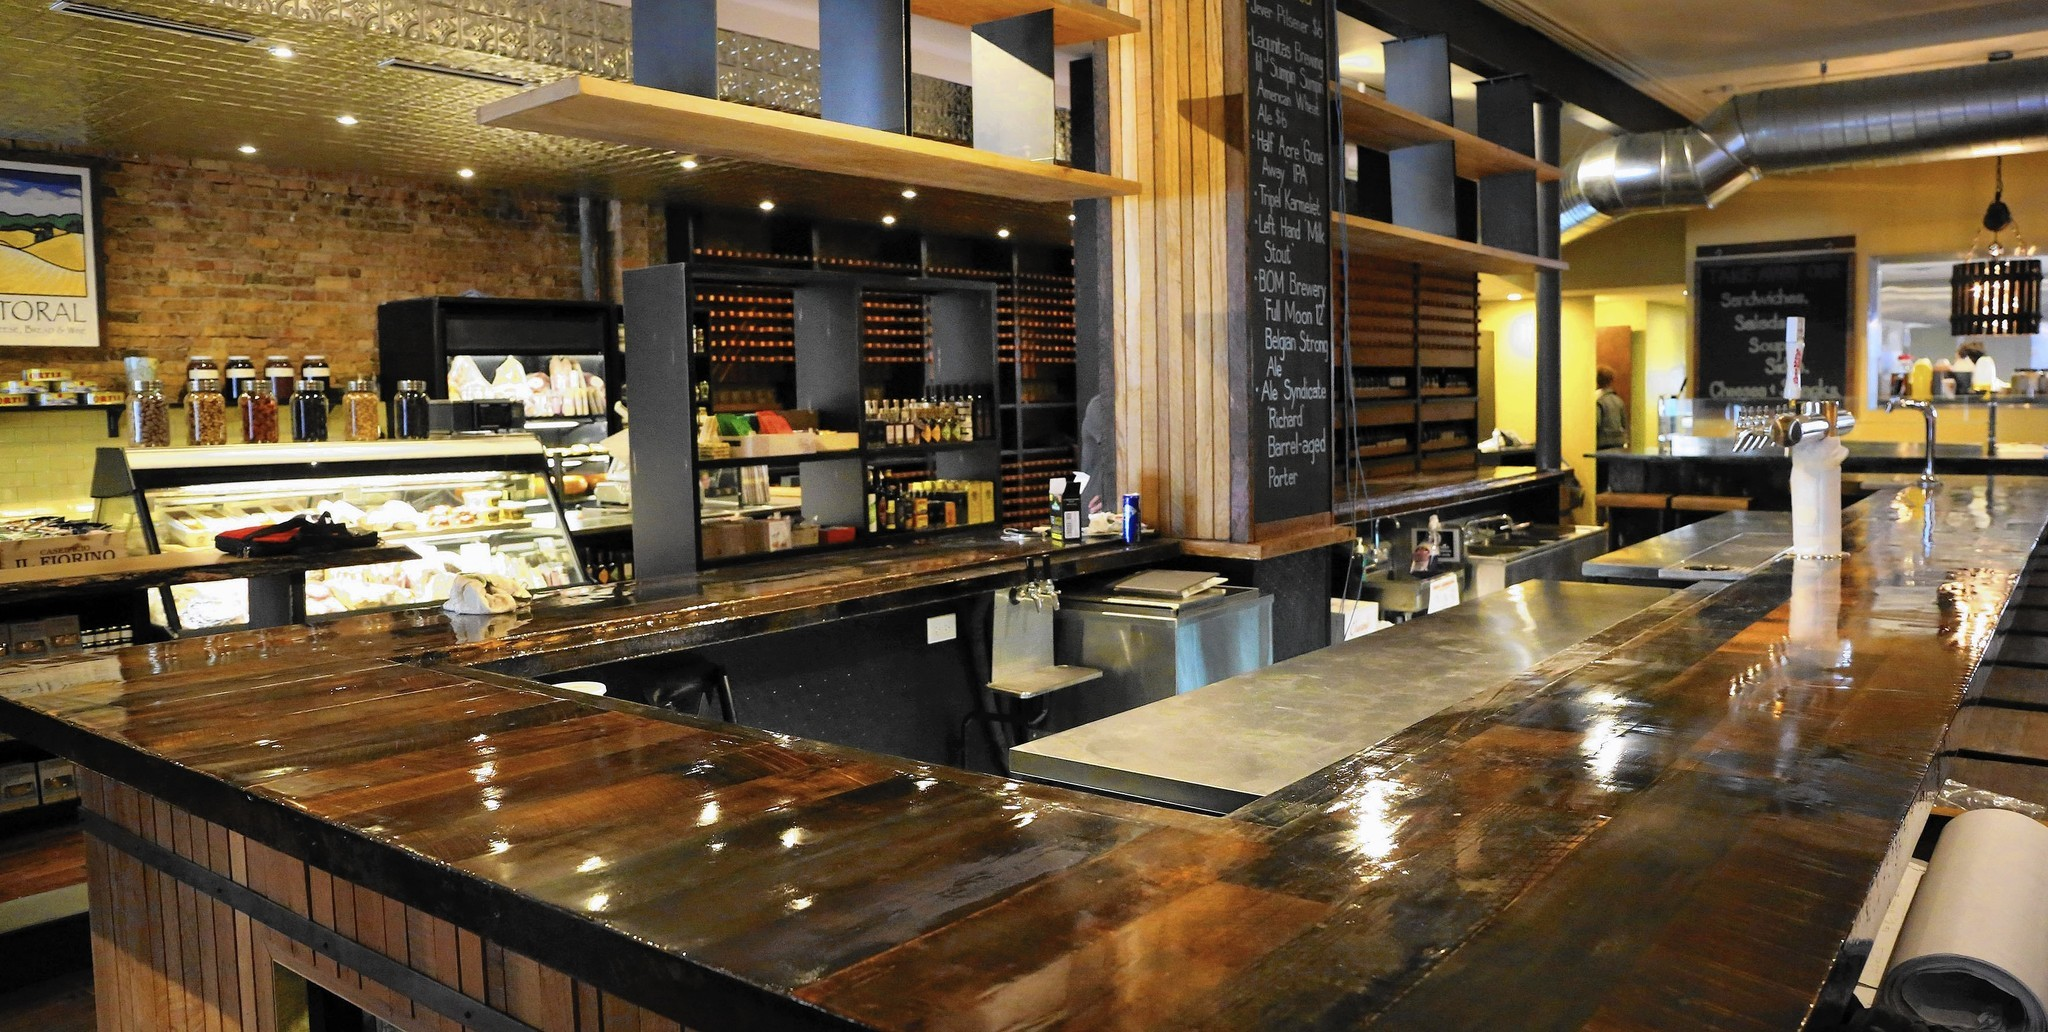 Pastorals Appellation opens today in Andersonville